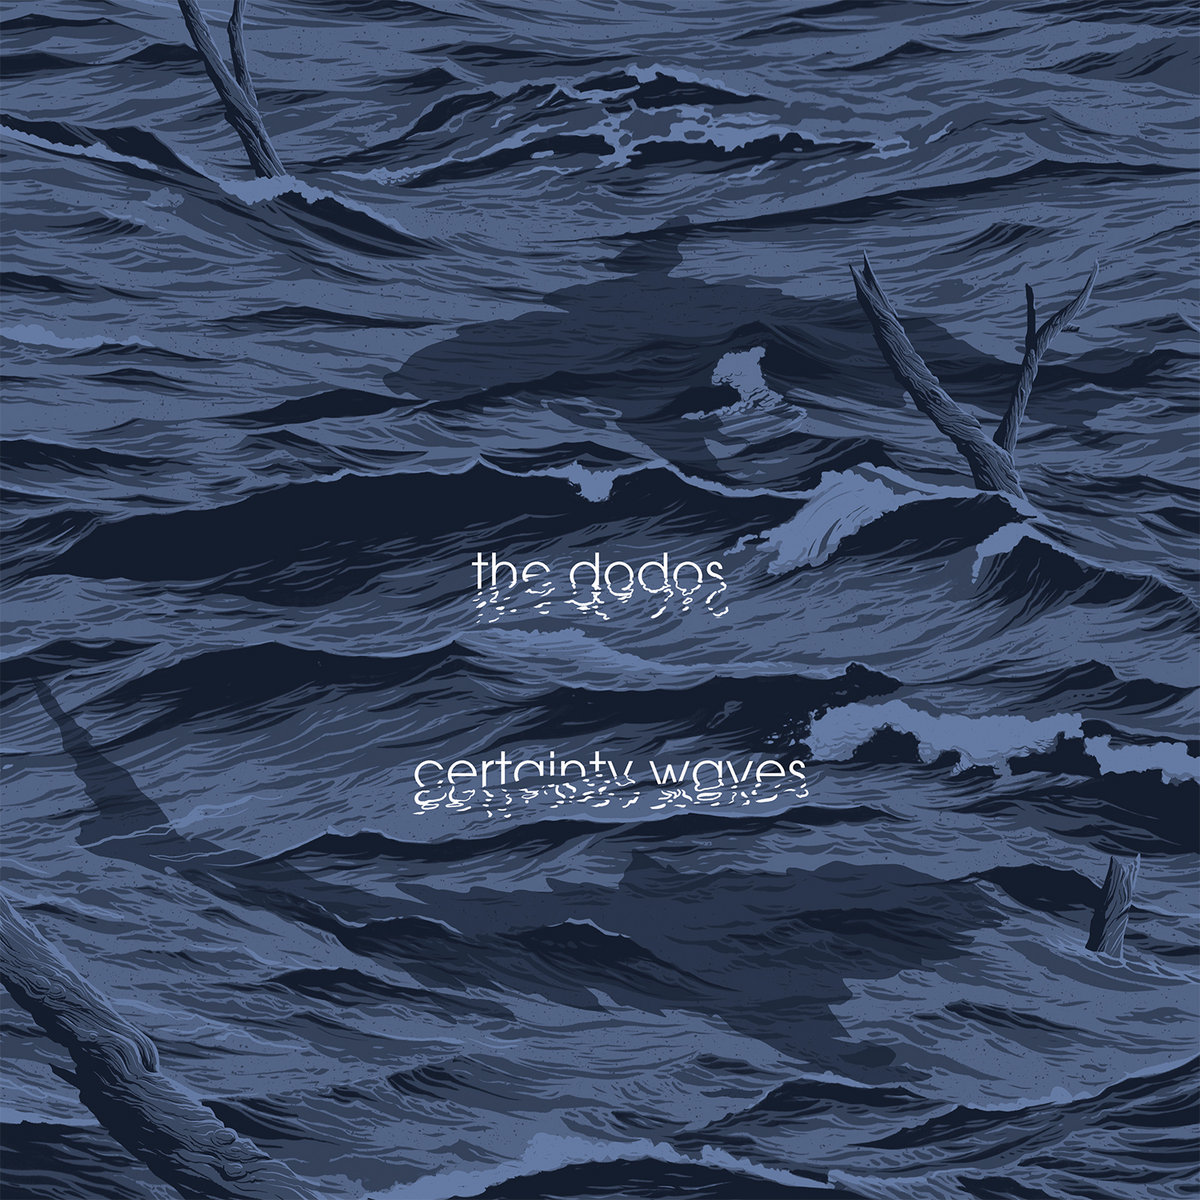 certainty waves the dodos